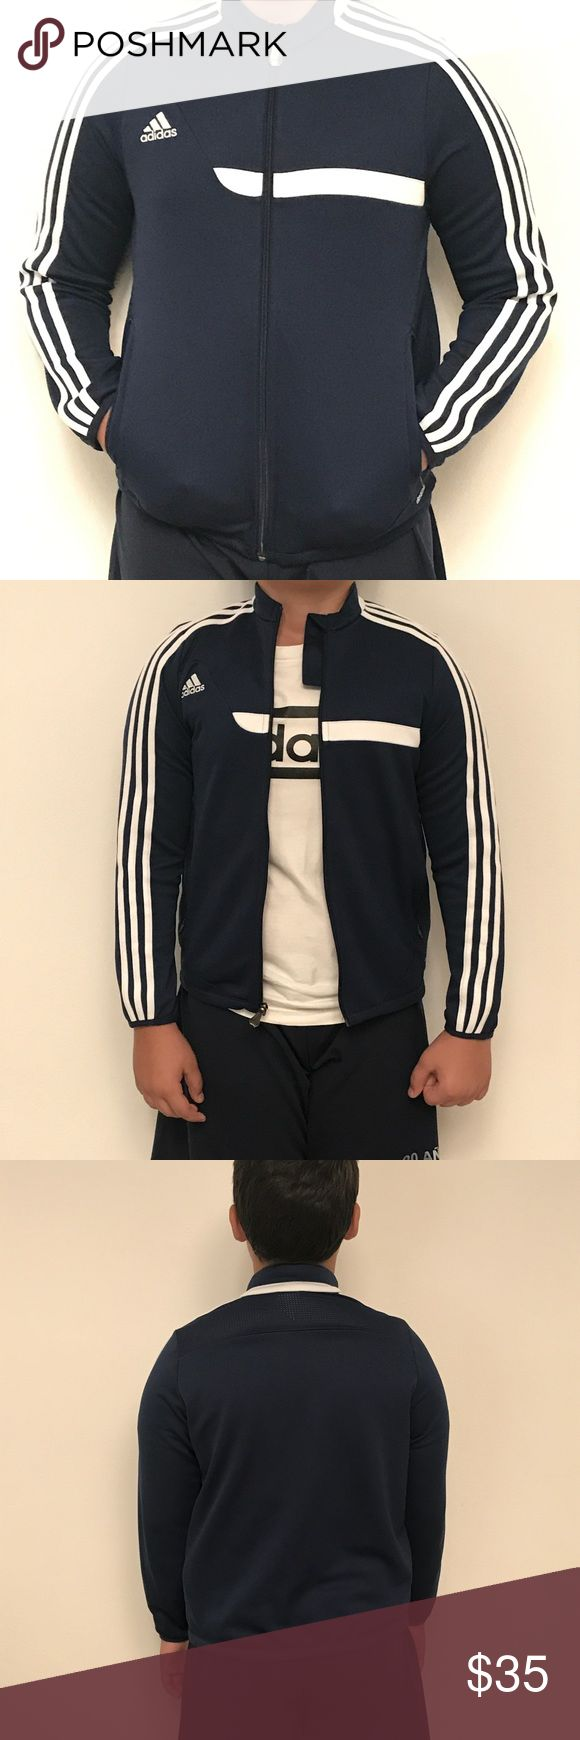 ADIDAS BOYS TRACKSUIT TOP JACKET NAVY BLUE BOYS ADIDAS TRACKSUIT TOP JACKET SIZE YM NAVY BLUE This jacket is pre-owned. It's a BOYS size. Fits a size 10-12-14 BOYS It has no worn damage. Please see pictures for more details. Jacket is like new. adidas Jackets & Coats